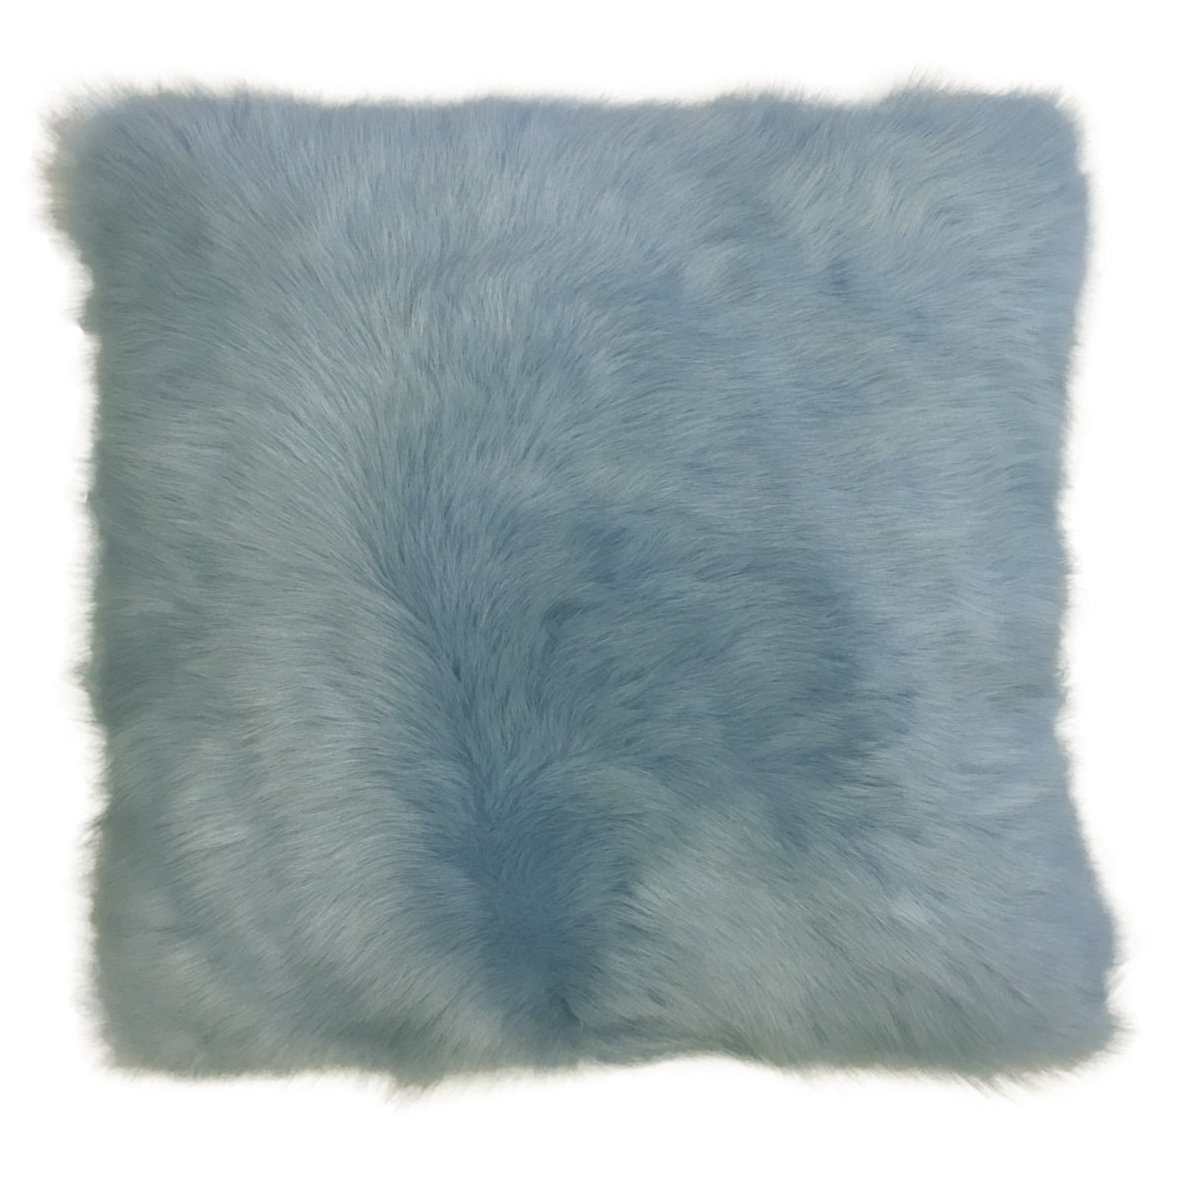 Shearling Pillow-Ciello-50x50cm_SPCIES3145050 - ANVOGG FEEL SHEARLING | ANVOGG